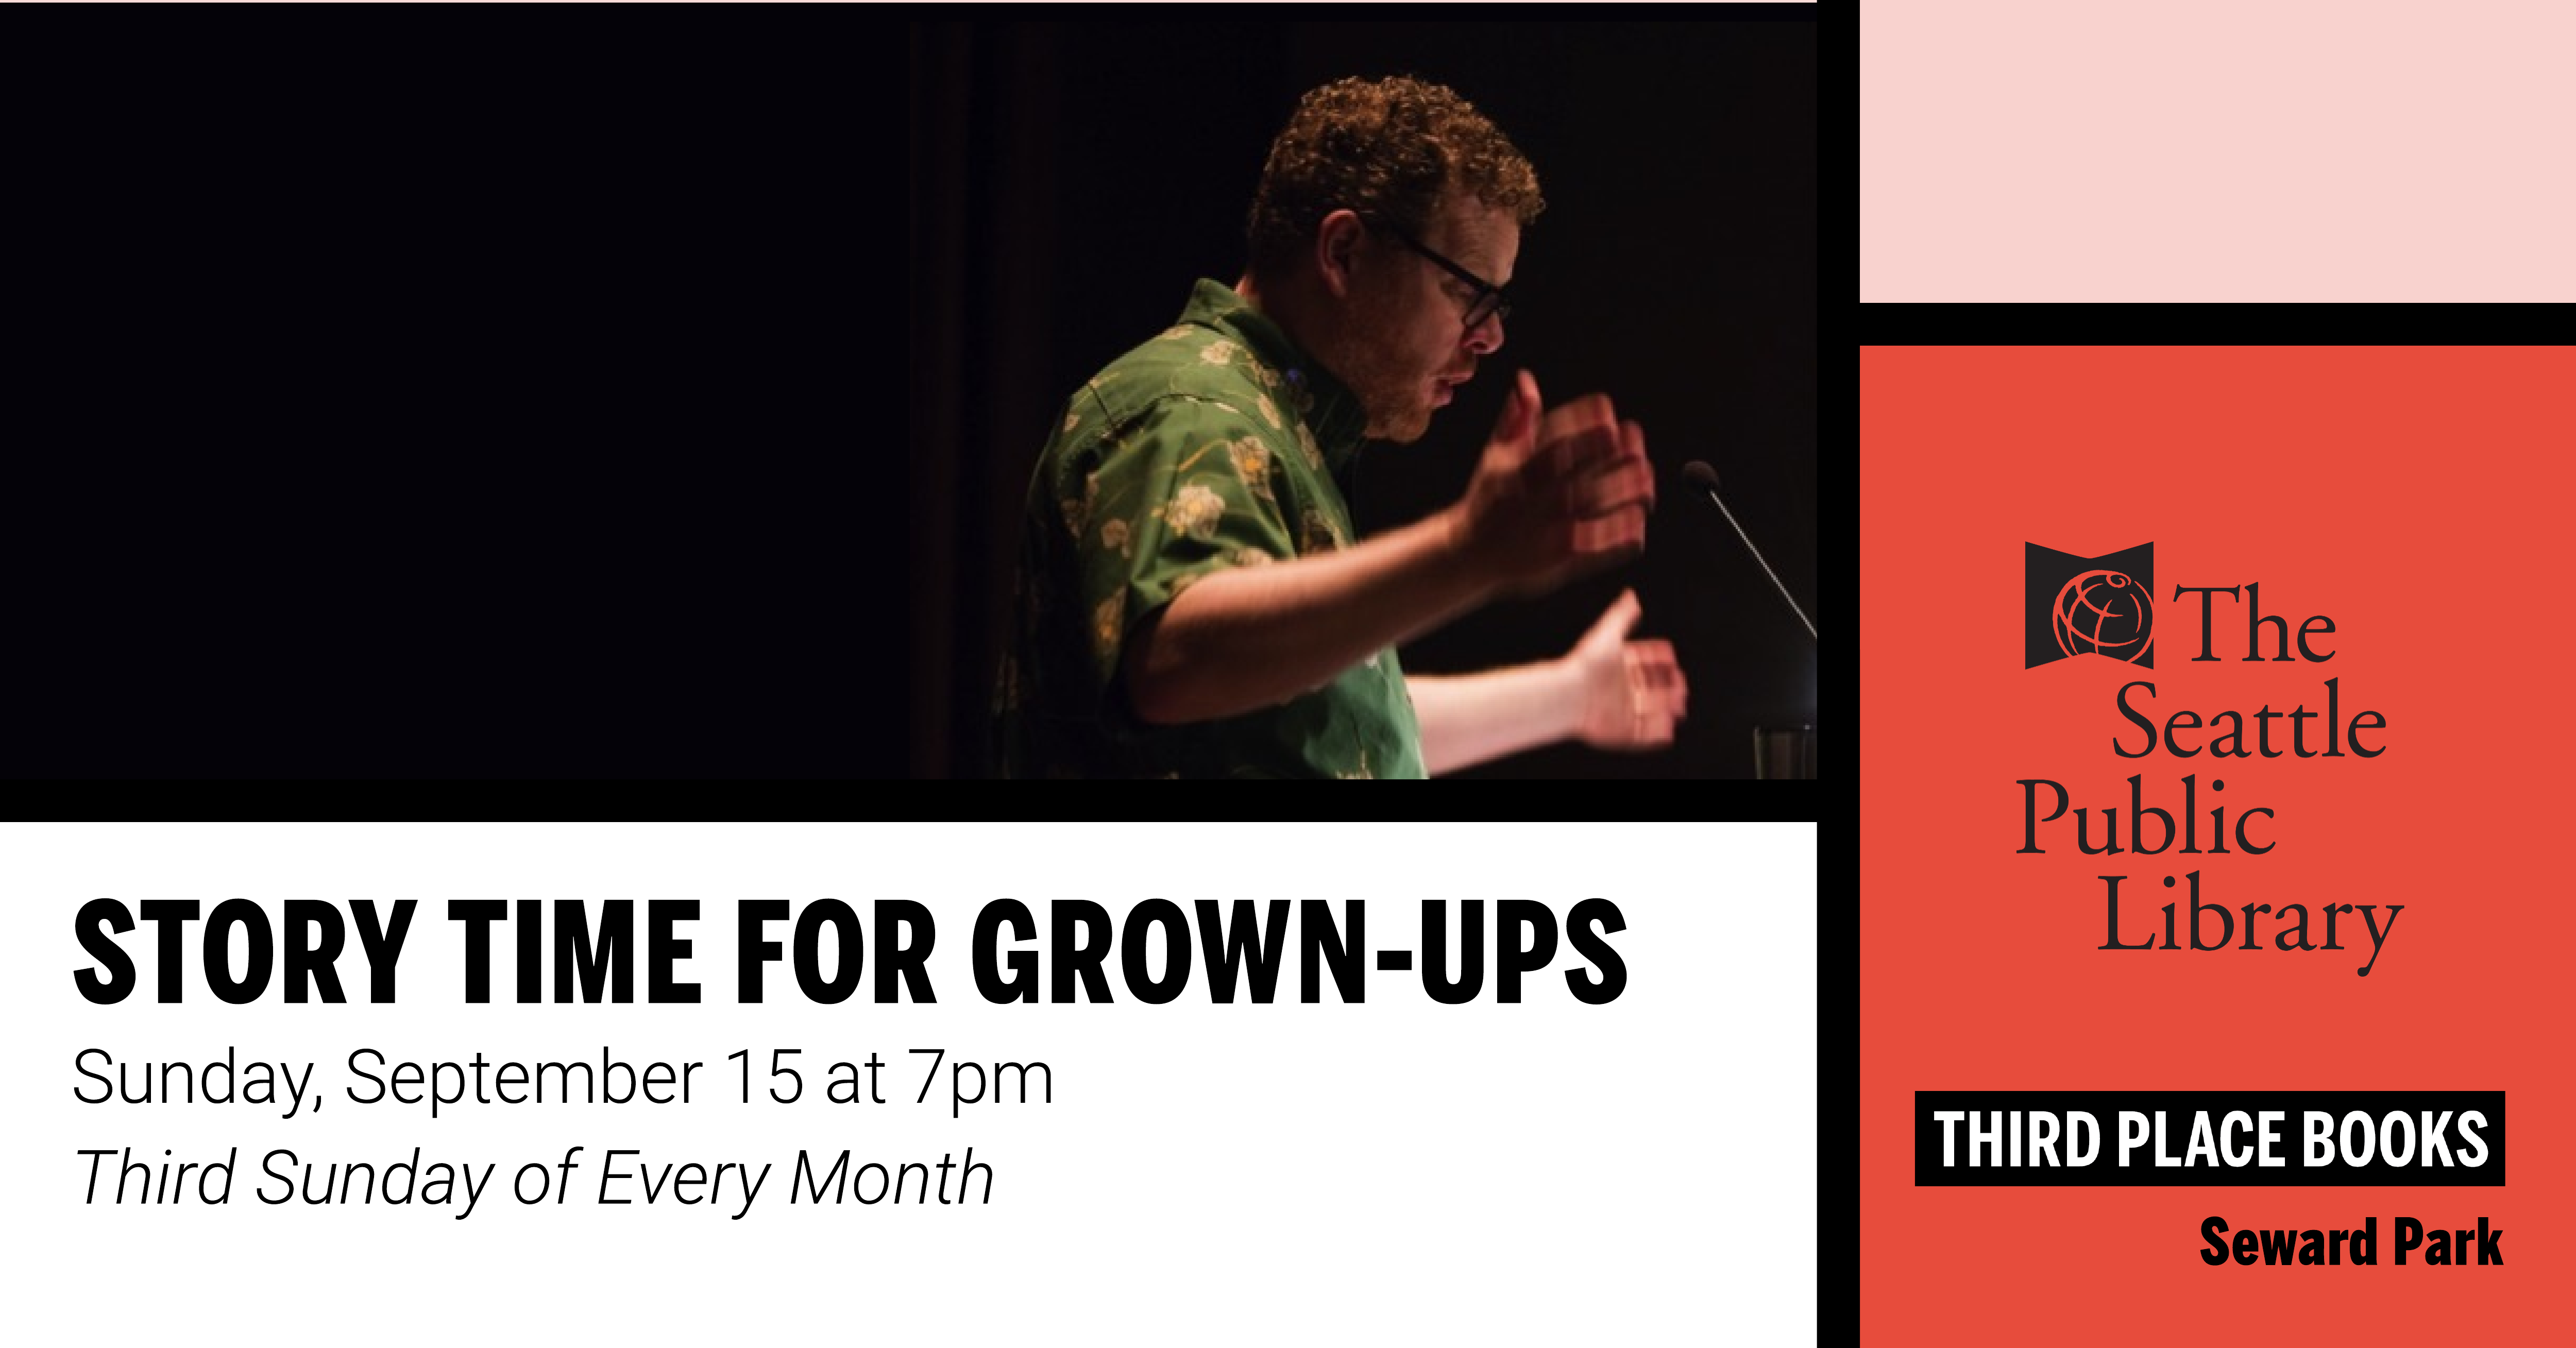 Story Time for Grown-Ups on Sunday, September 15 at 7pm